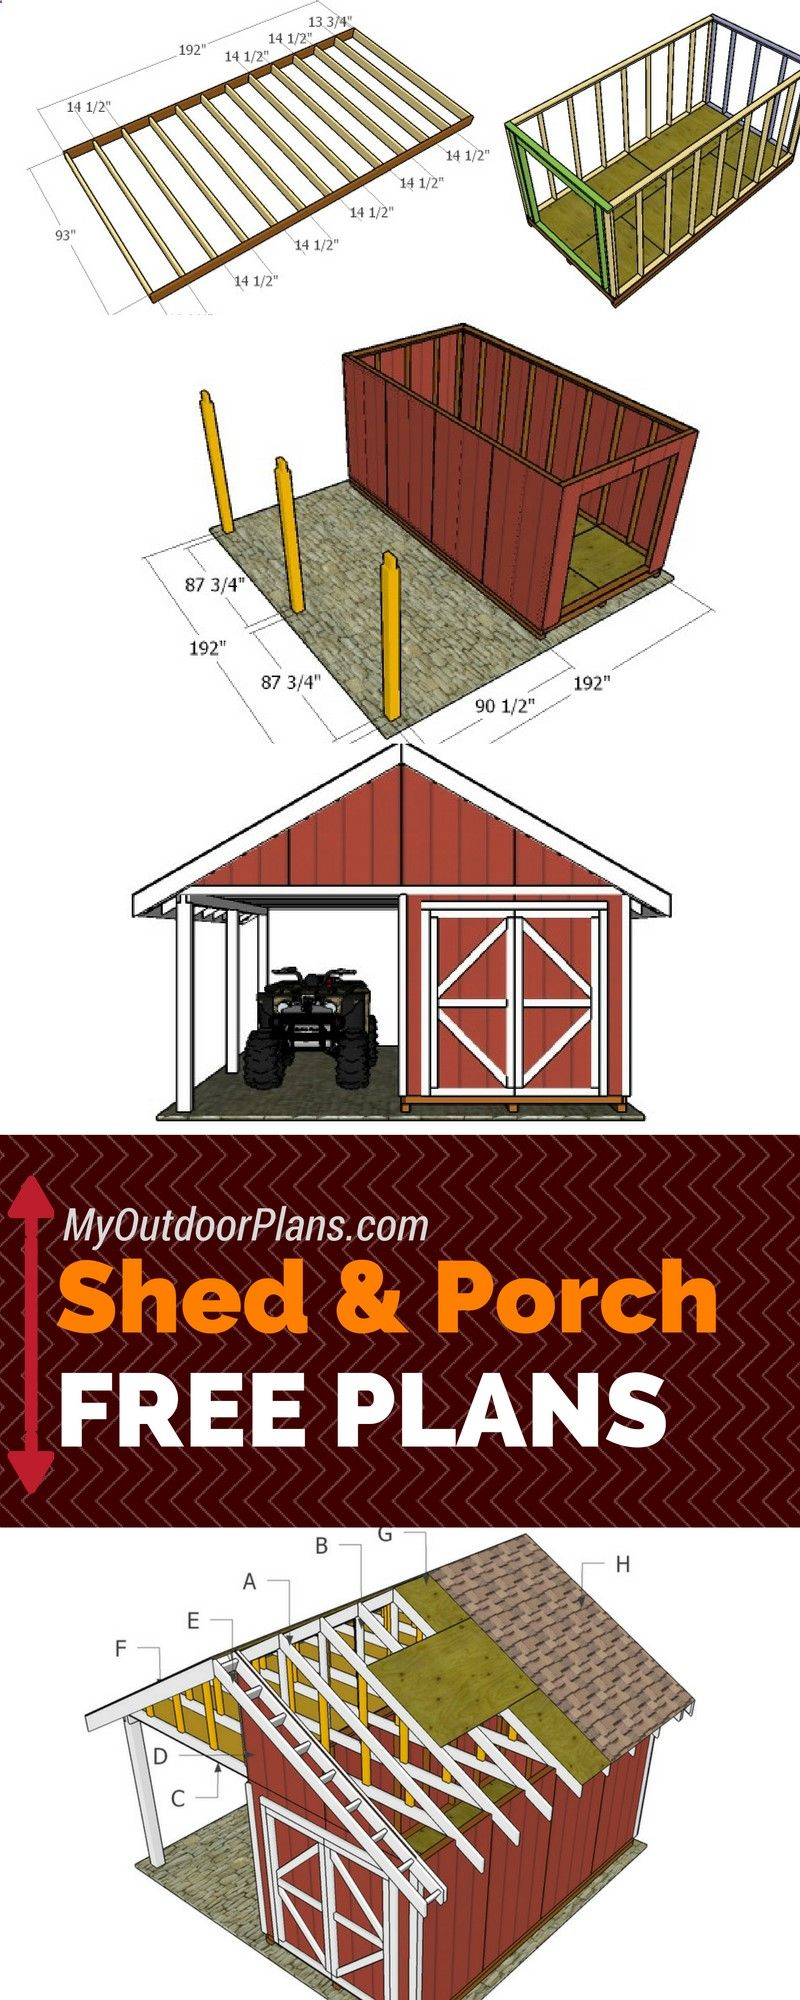 Pin By Laura Shelton On Back Yard Ideas In 2020 Shed With Porch